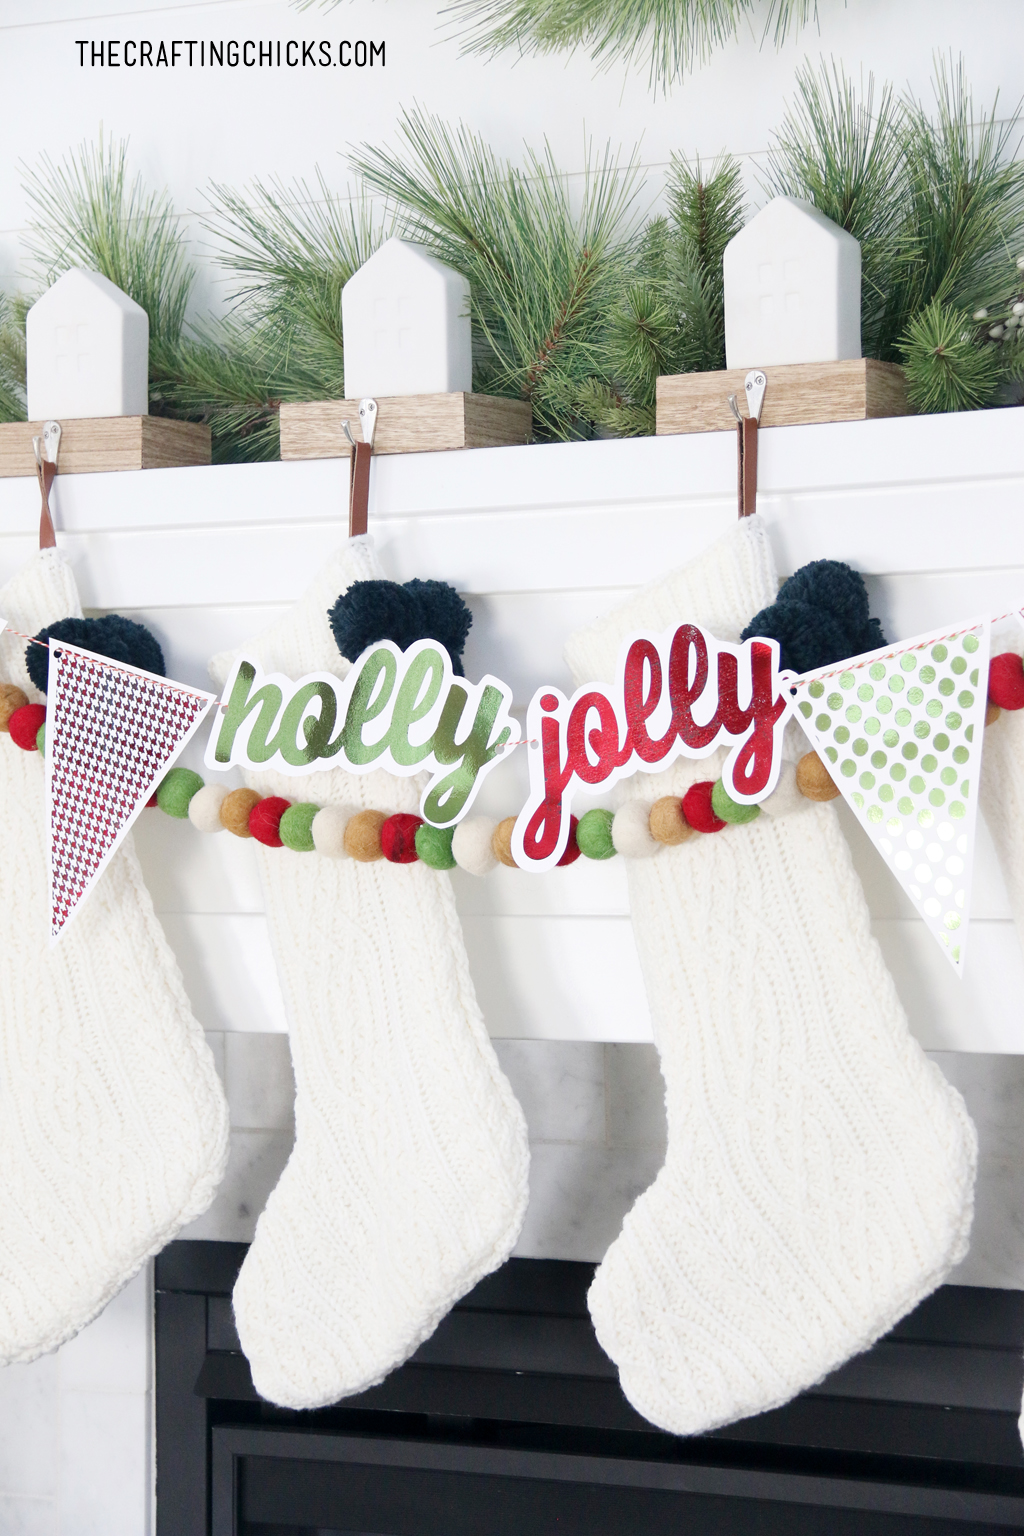 White Stockings on a mantle with adorable foiled Holly Jolly banner